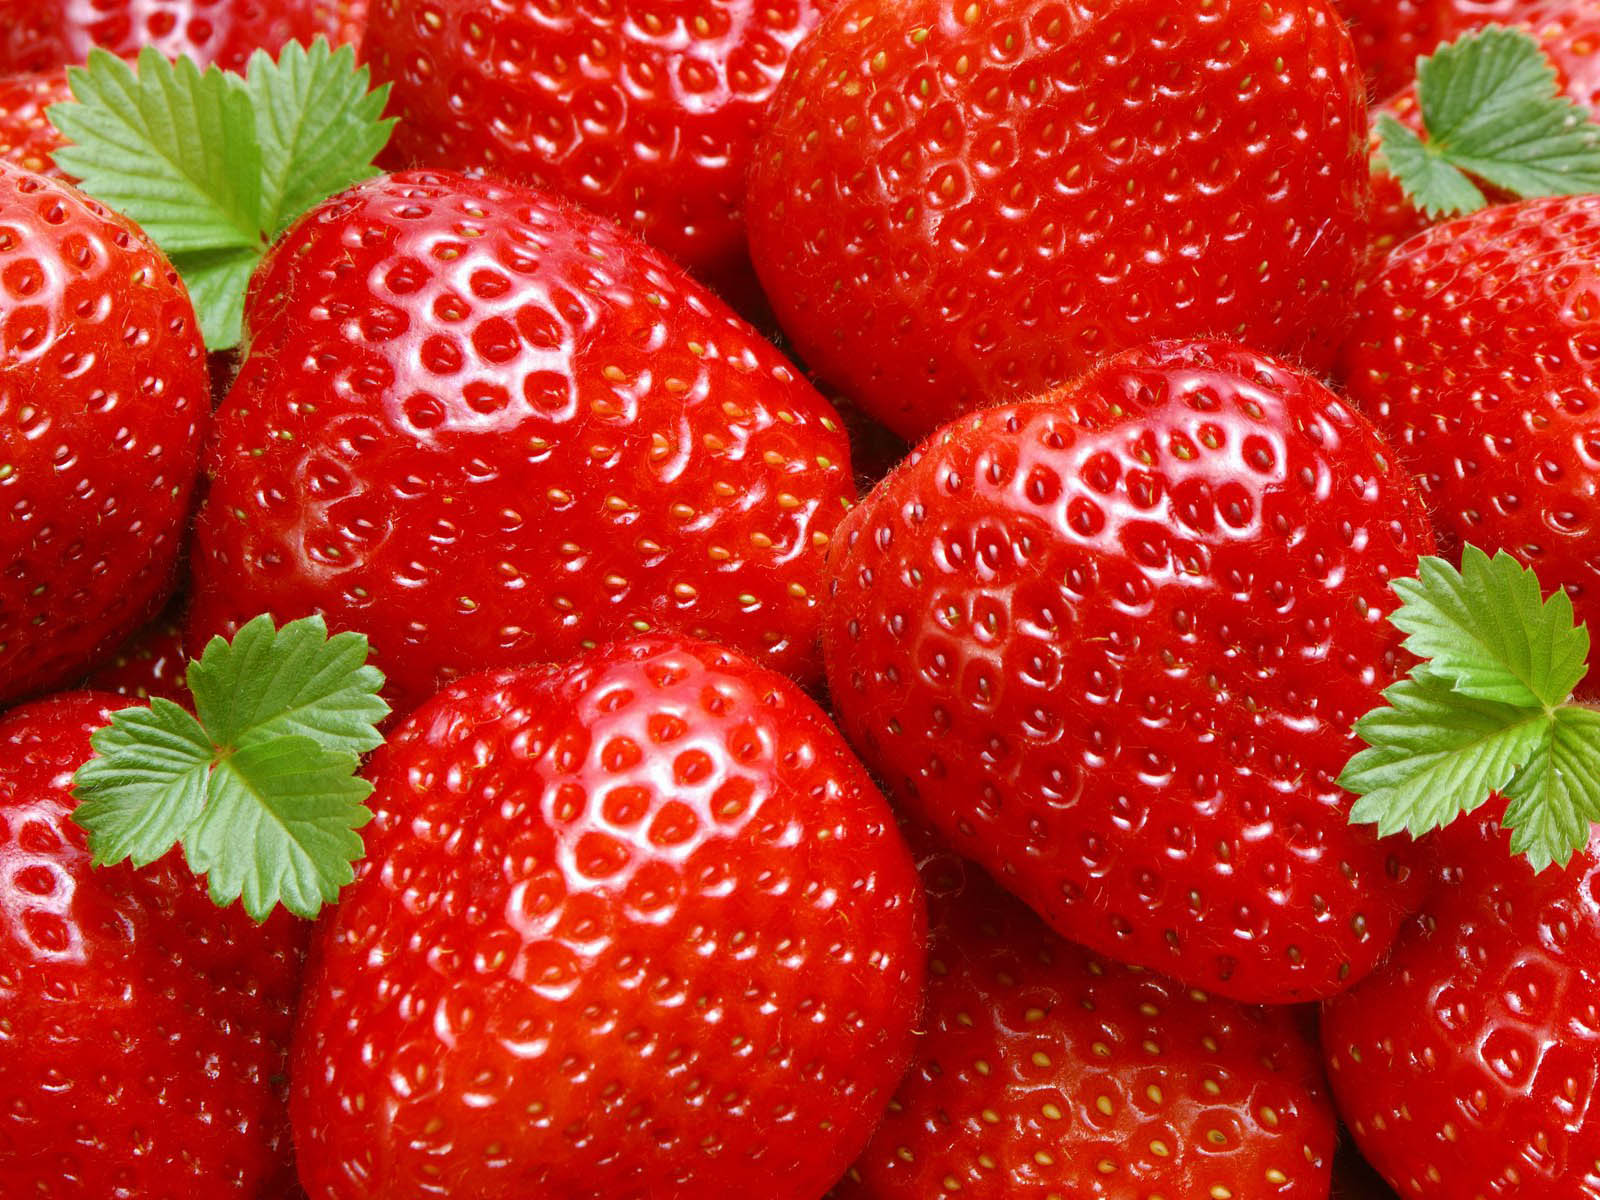 the Strawberry Wallpapers Strawberry Desktop Wallpapers Strawberry 1600x1200